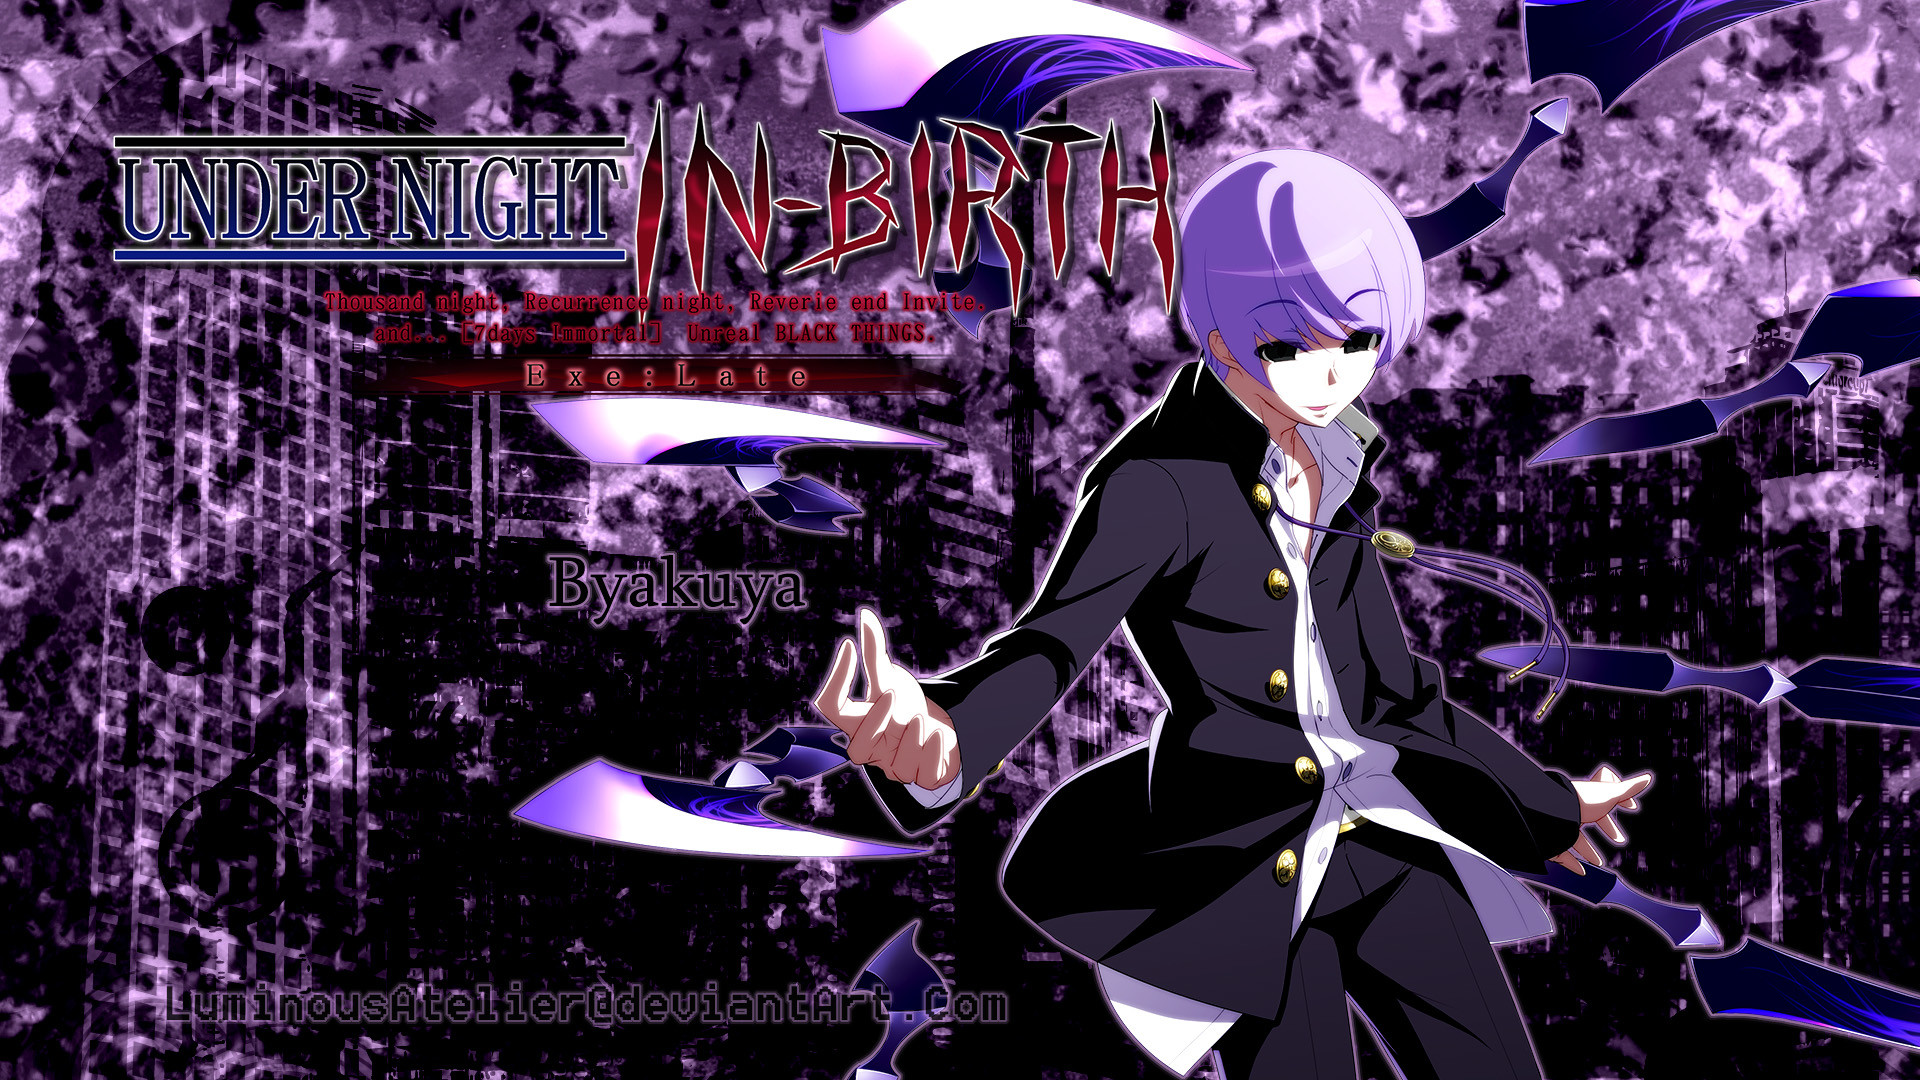 1920x1080 ... Custom Wallpaper - UNIEL Byakuya Ver.0 by LuminousAtelier